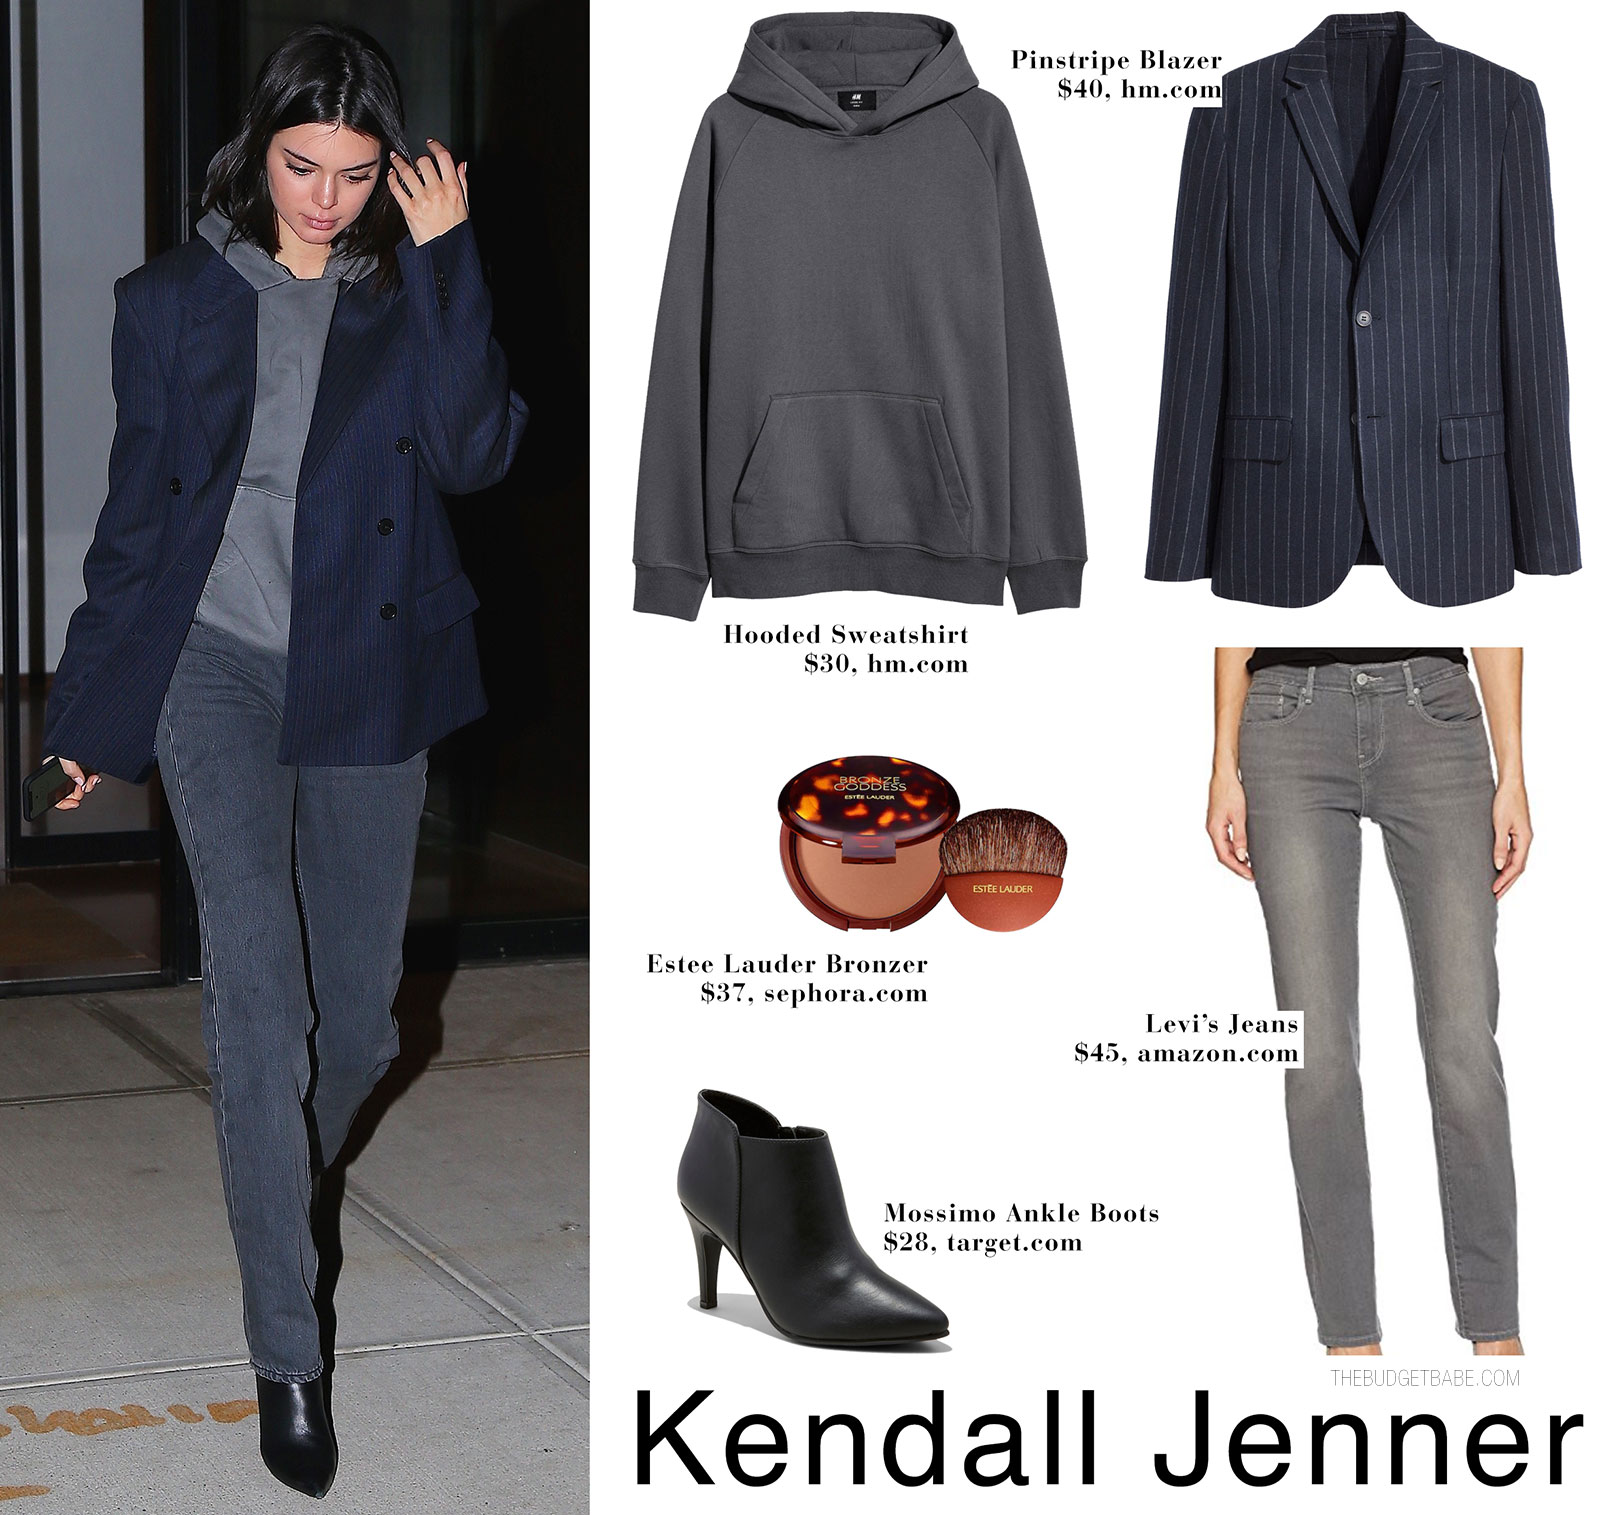 Kendall Jenner wears a pinstripe navy blazer with a hoodie, Yeezy jeans and Balenciaga boots